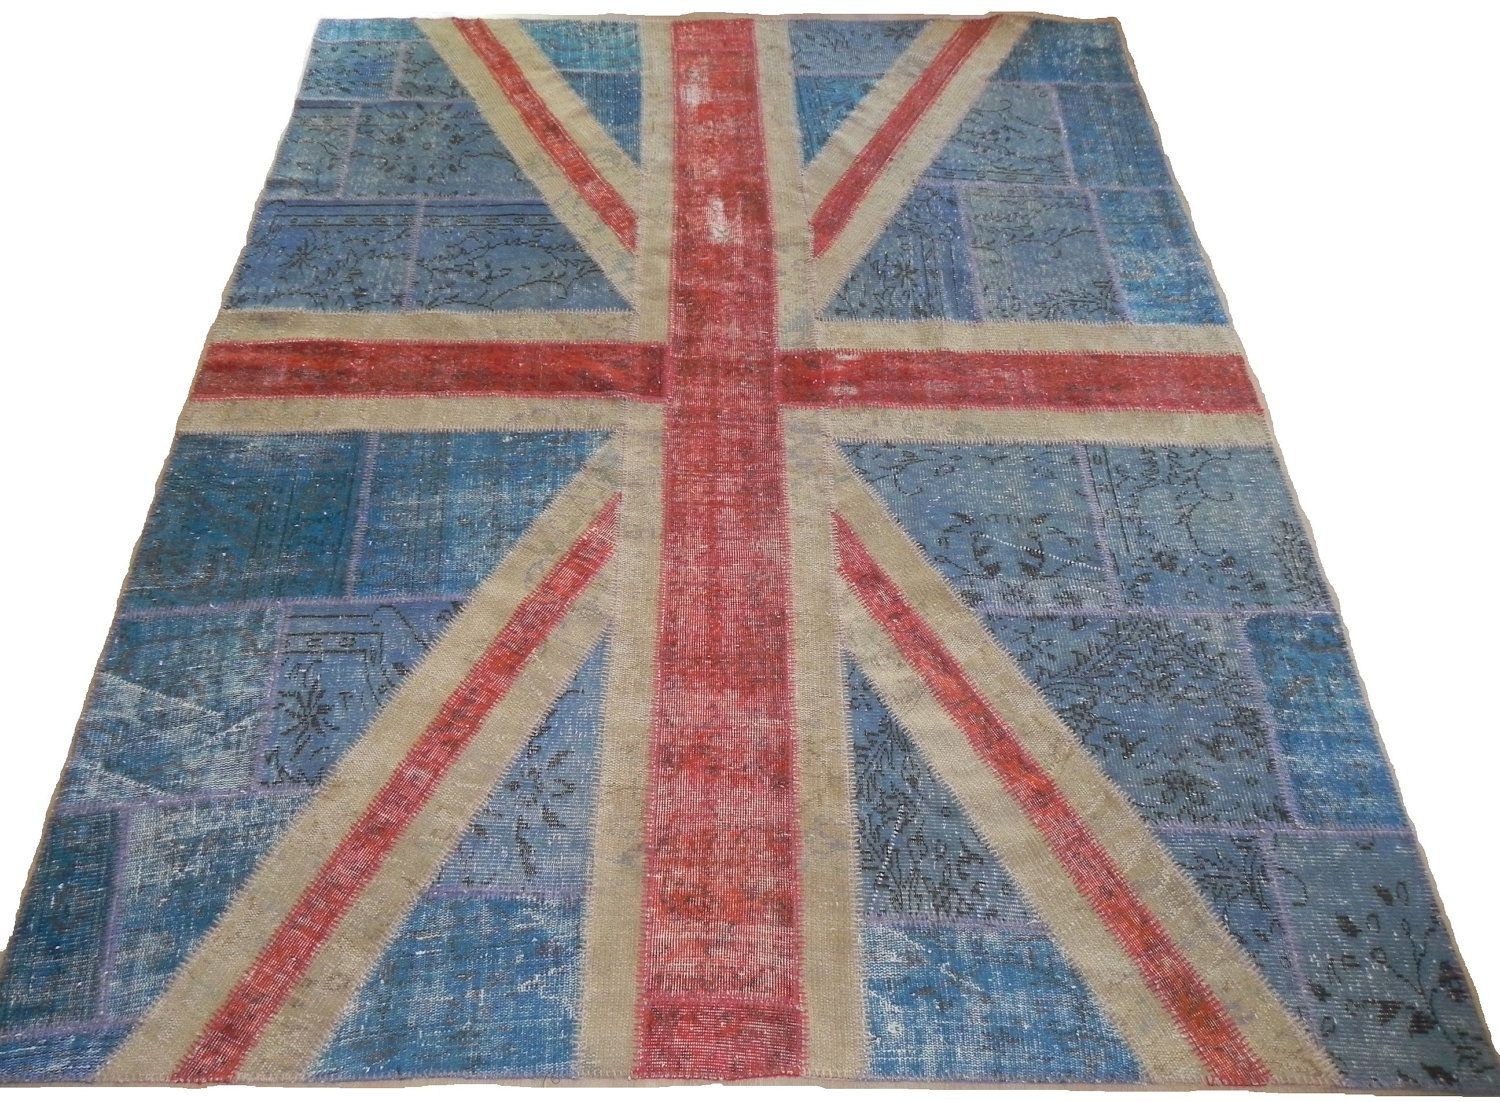 Vintage Distressed Union Jack Rug